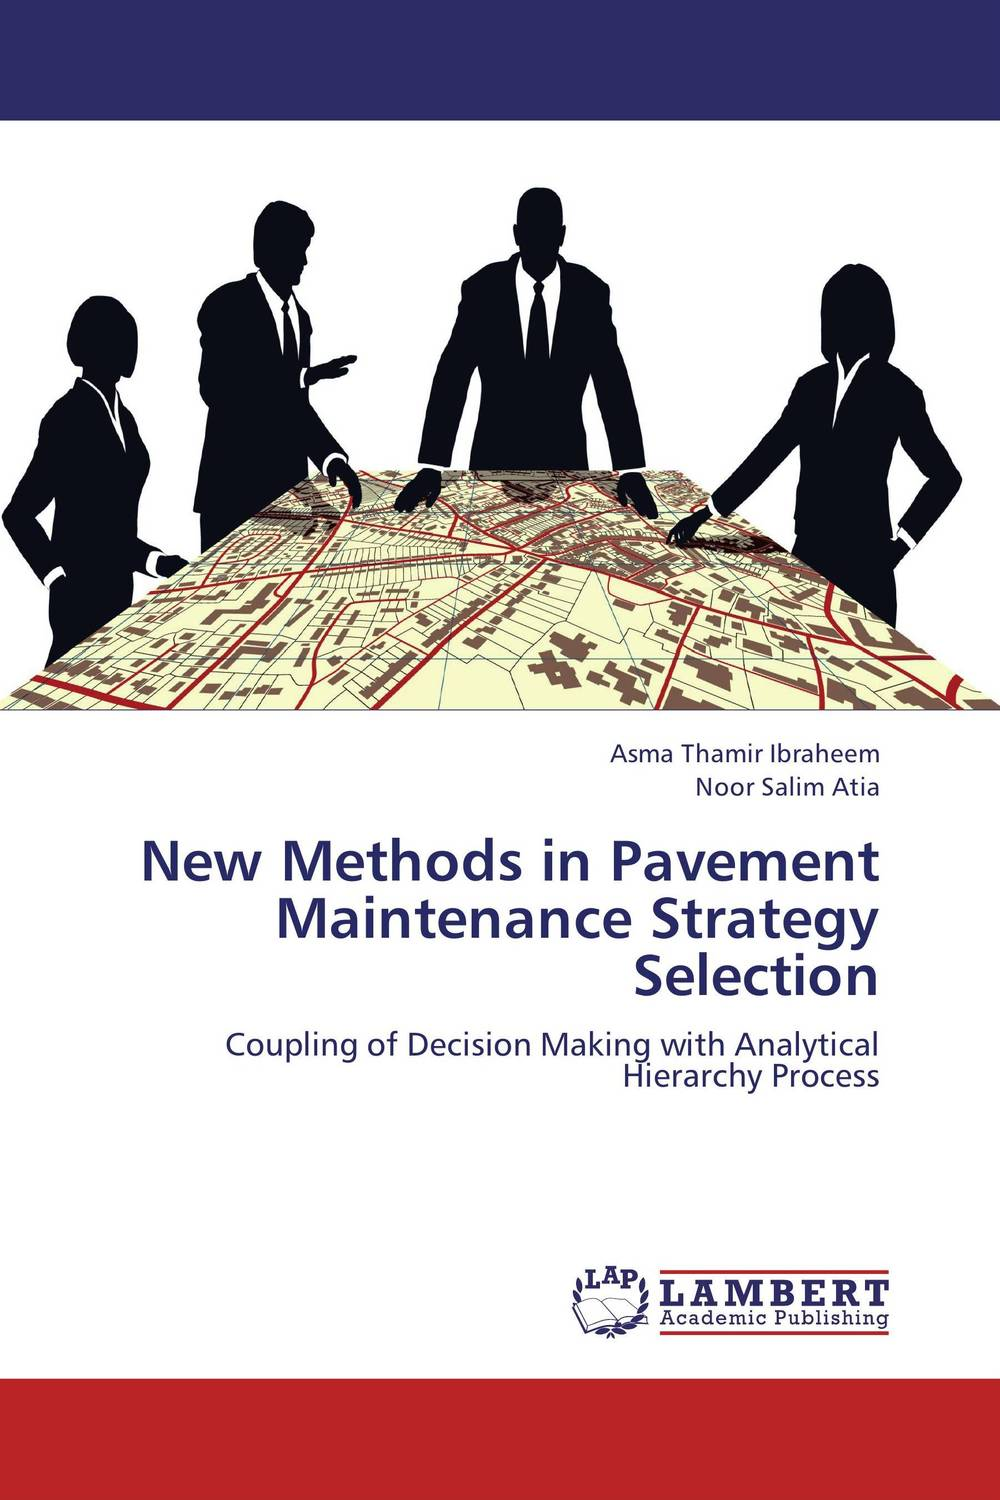 New Methods in Pavement Maintenance Strategy Selection marc vollenweider mind machine a decision model for optimizing and implementing analytics